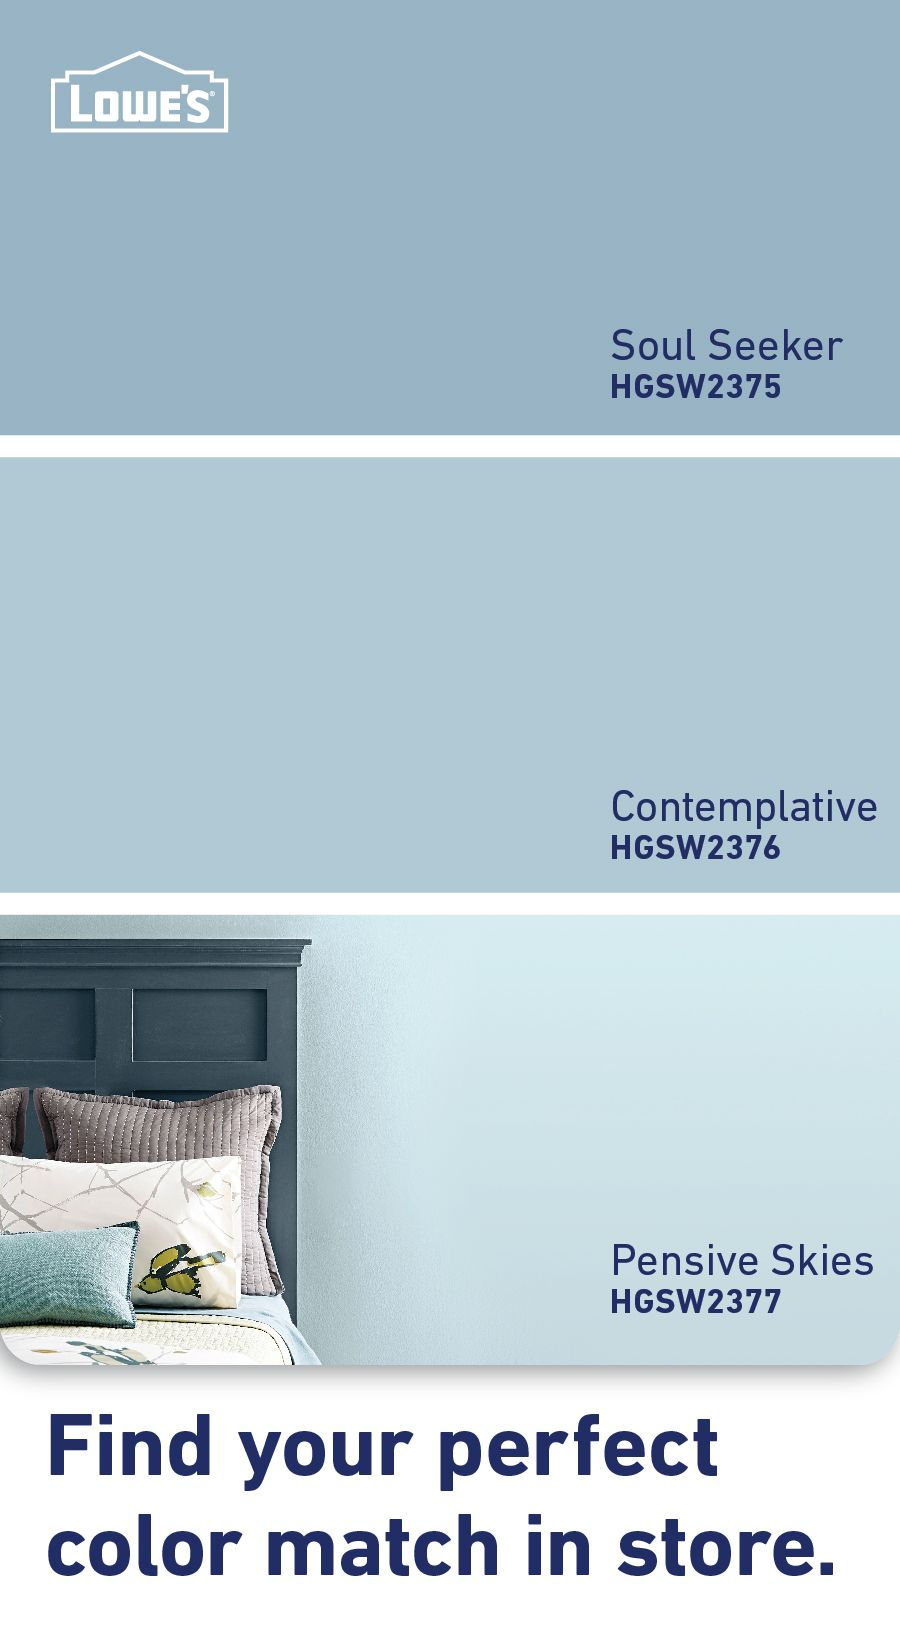 Can Lowes Color Match Paint : lowes, color, match, paint, Fresh, Paint, Completely, Transform, Space., Lowe's, Discover, Colors, Home,, Lowes, Colors,, Indoor